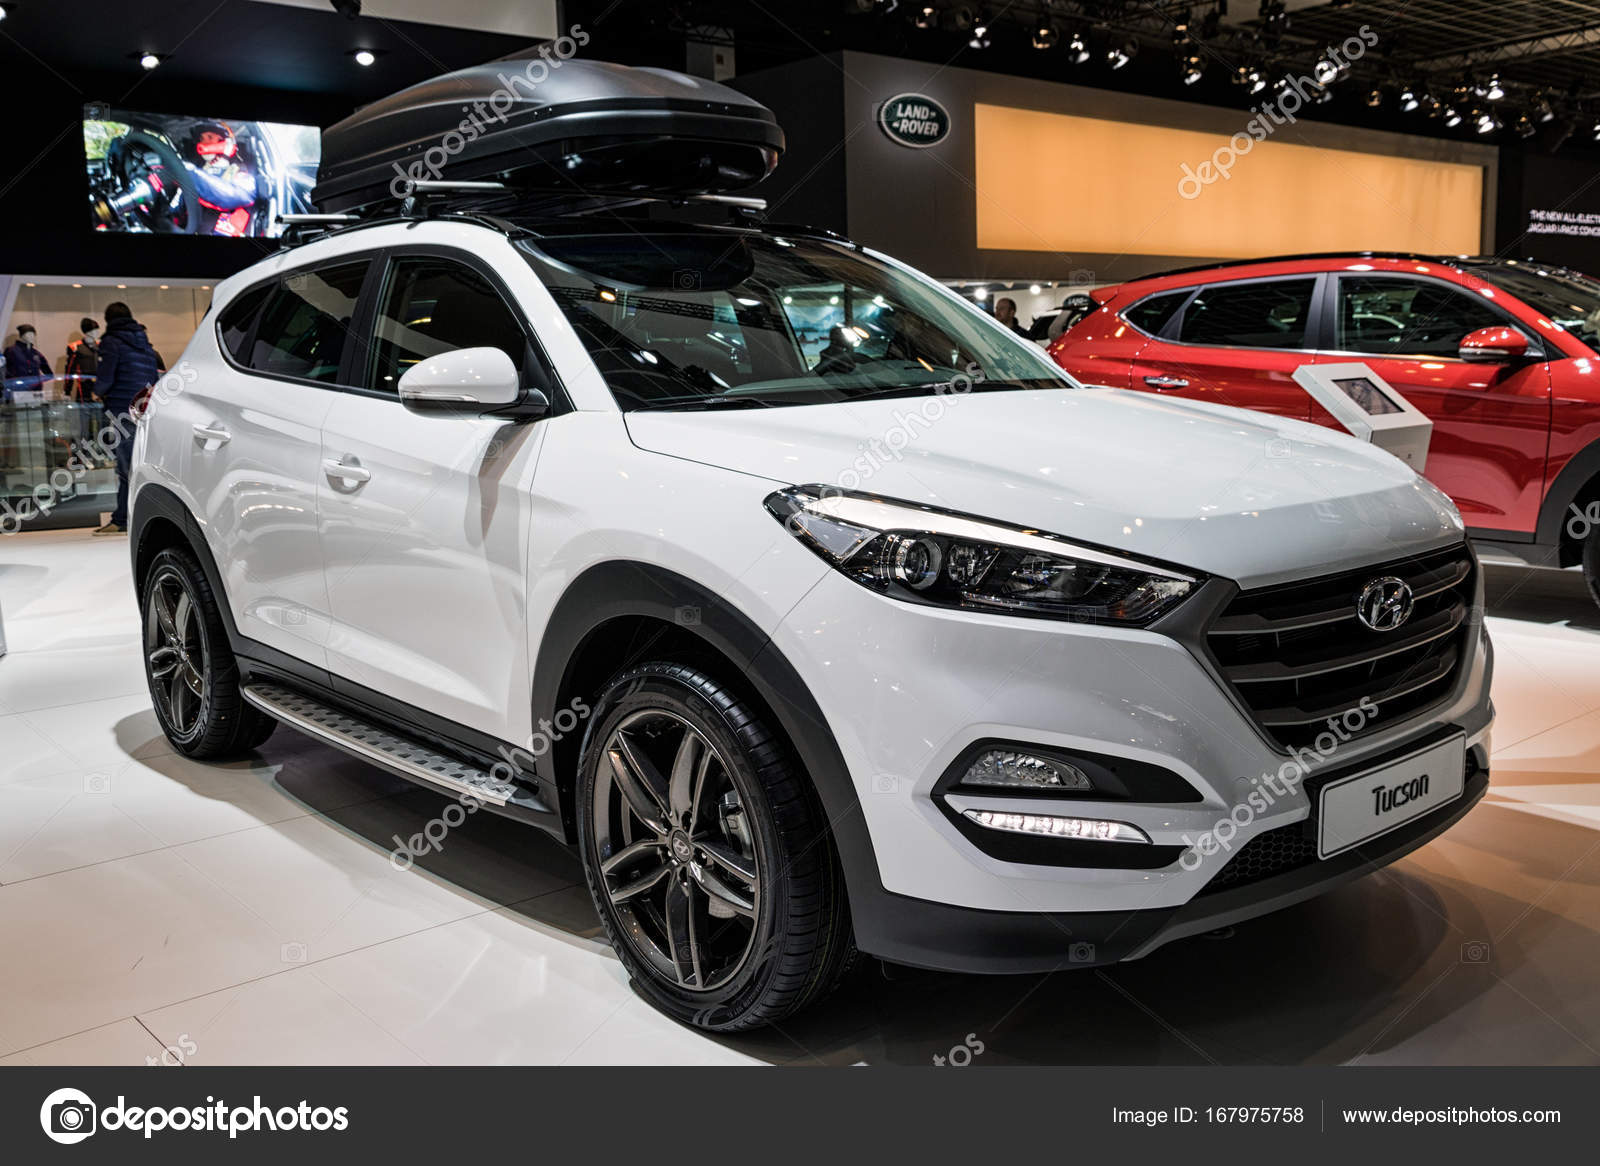 carro hyundai tucson de 2017 fotografia de stock editorial foto vdw 167975758. Black Bedroom Furniture Sets. Home Design Ideas